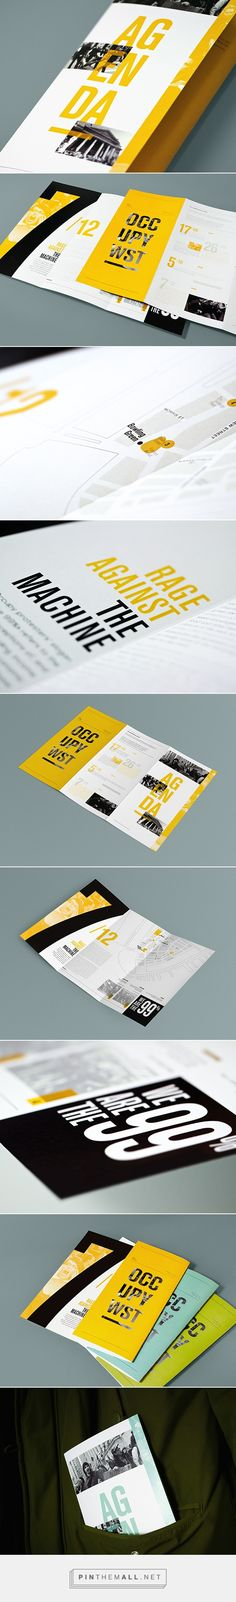 OCCUPY Wall-Street historical booklets on Behance - created via https://pinthemall.net